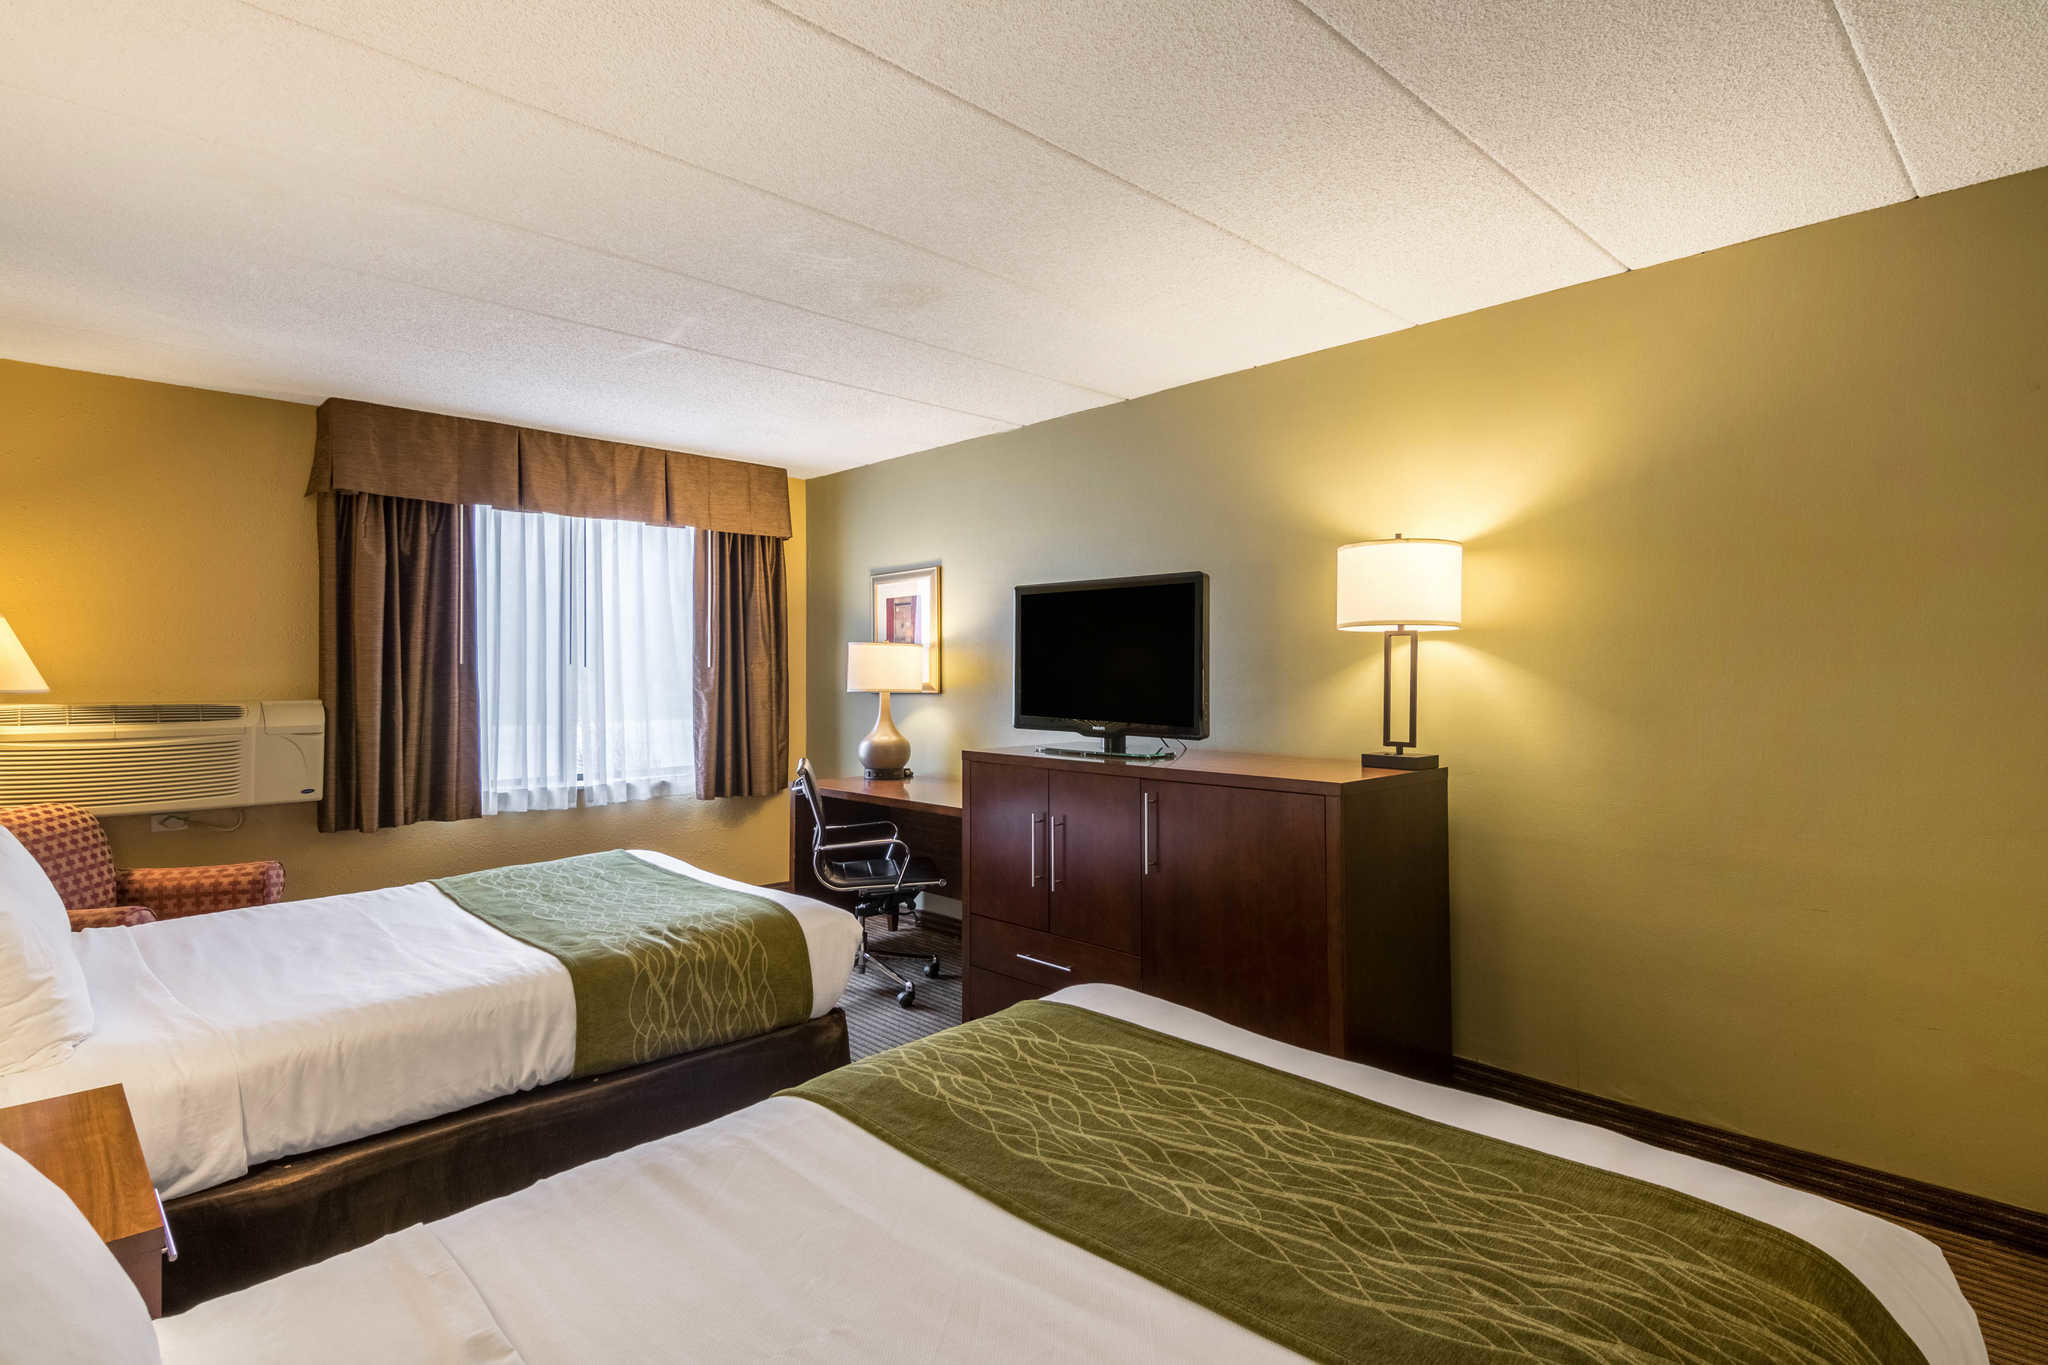 Comfort Inn Coupons Plymouth Mn Near Me 8coupons